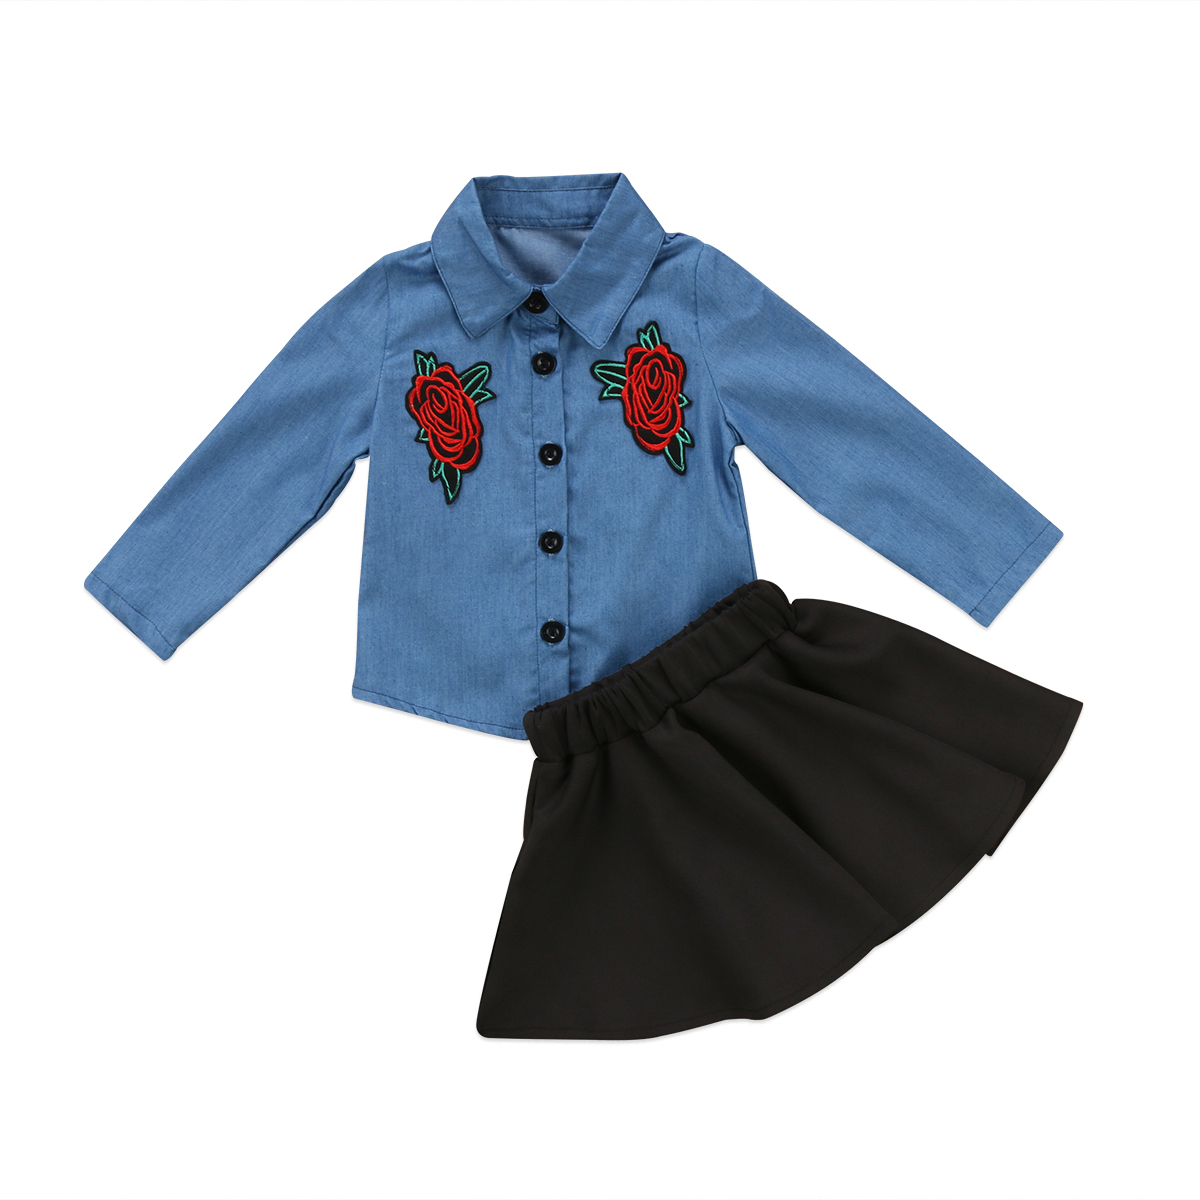 Kids Baby Girls Clothes Sets Denim Tops Long Sleeve Shirt Skirt Tutu Cute Embroidery Flower Outfits Clothing Set Set Girl princess toddler kids baby girl clothes sets sequins tops vest tutu skirts cute ball headband 3pcs outfits set girls clothing